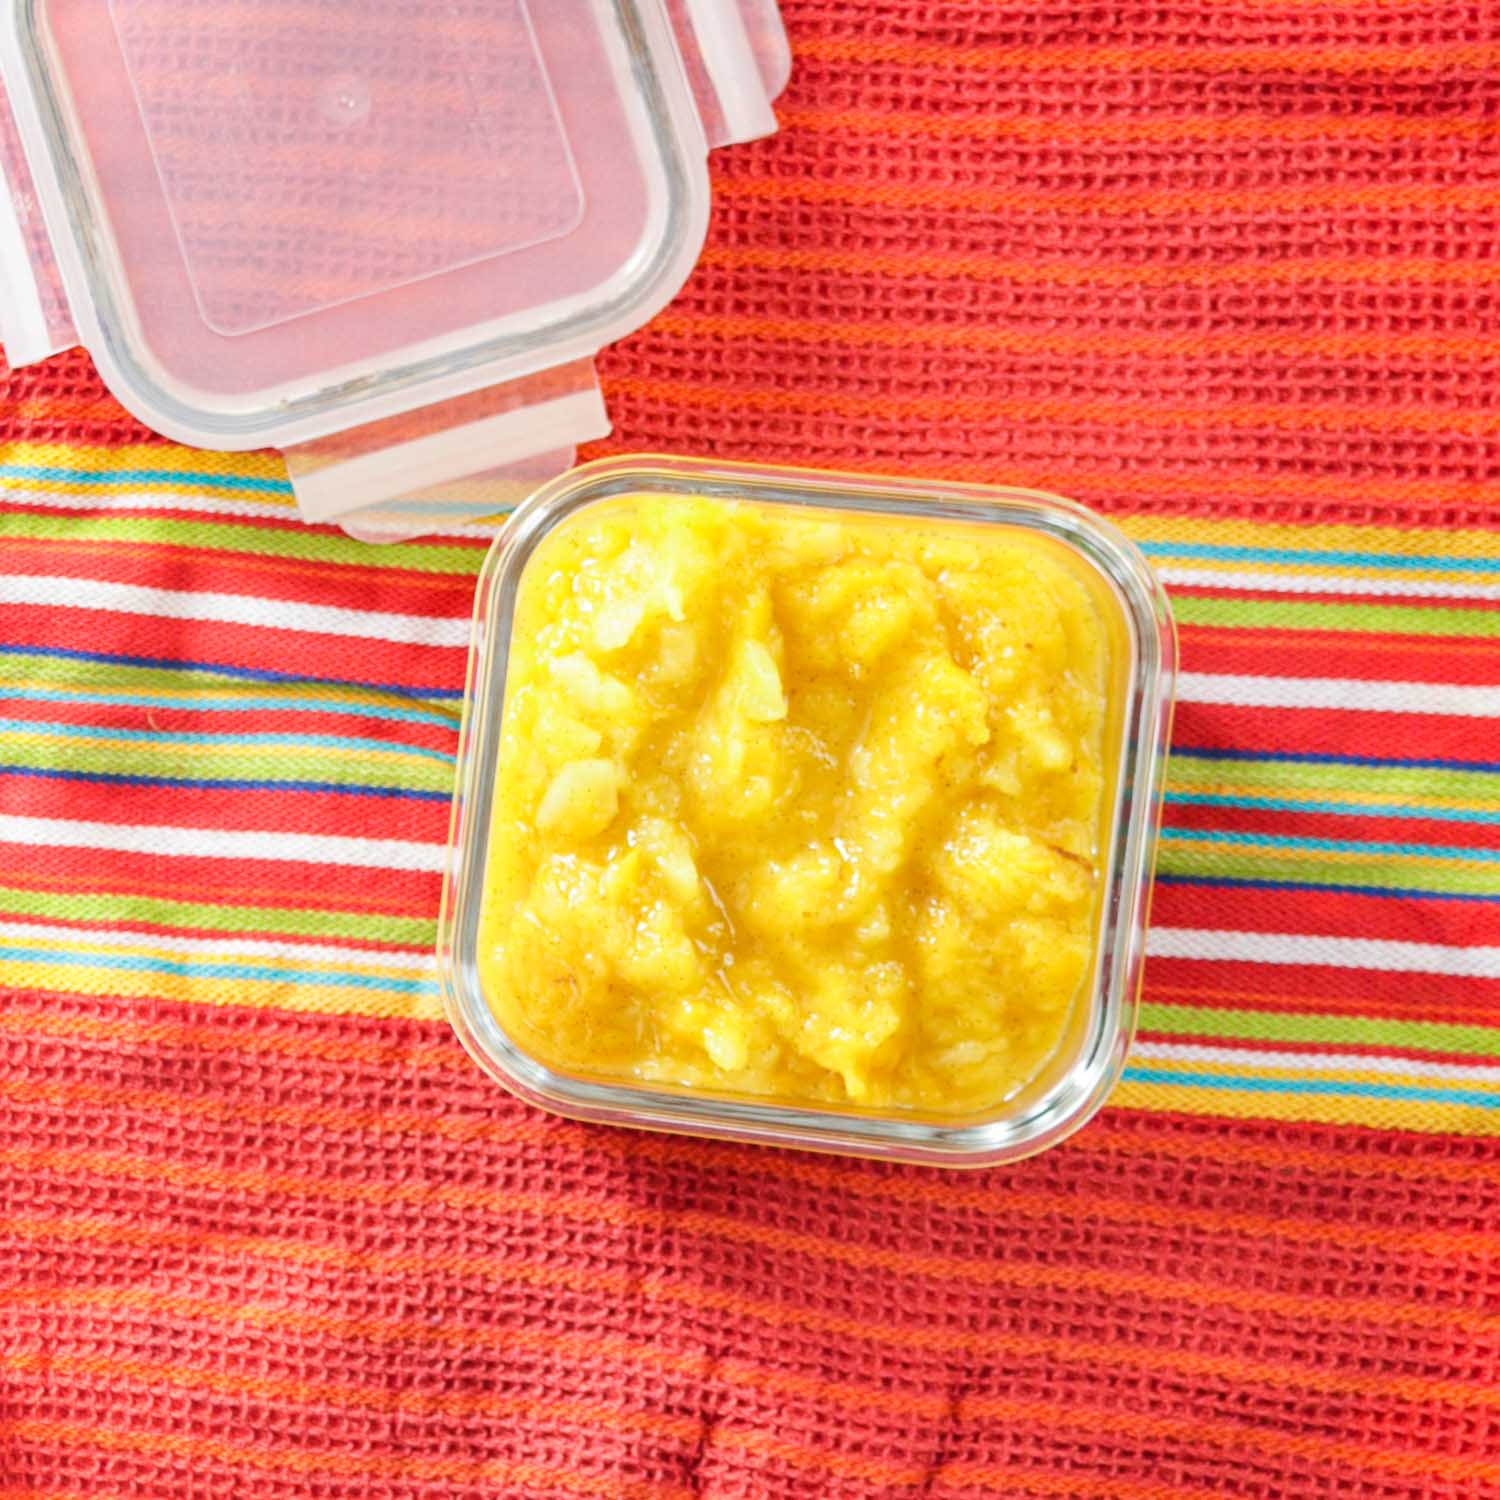 Mango Applesauce in a bowl on a bright colored kitchen towel.